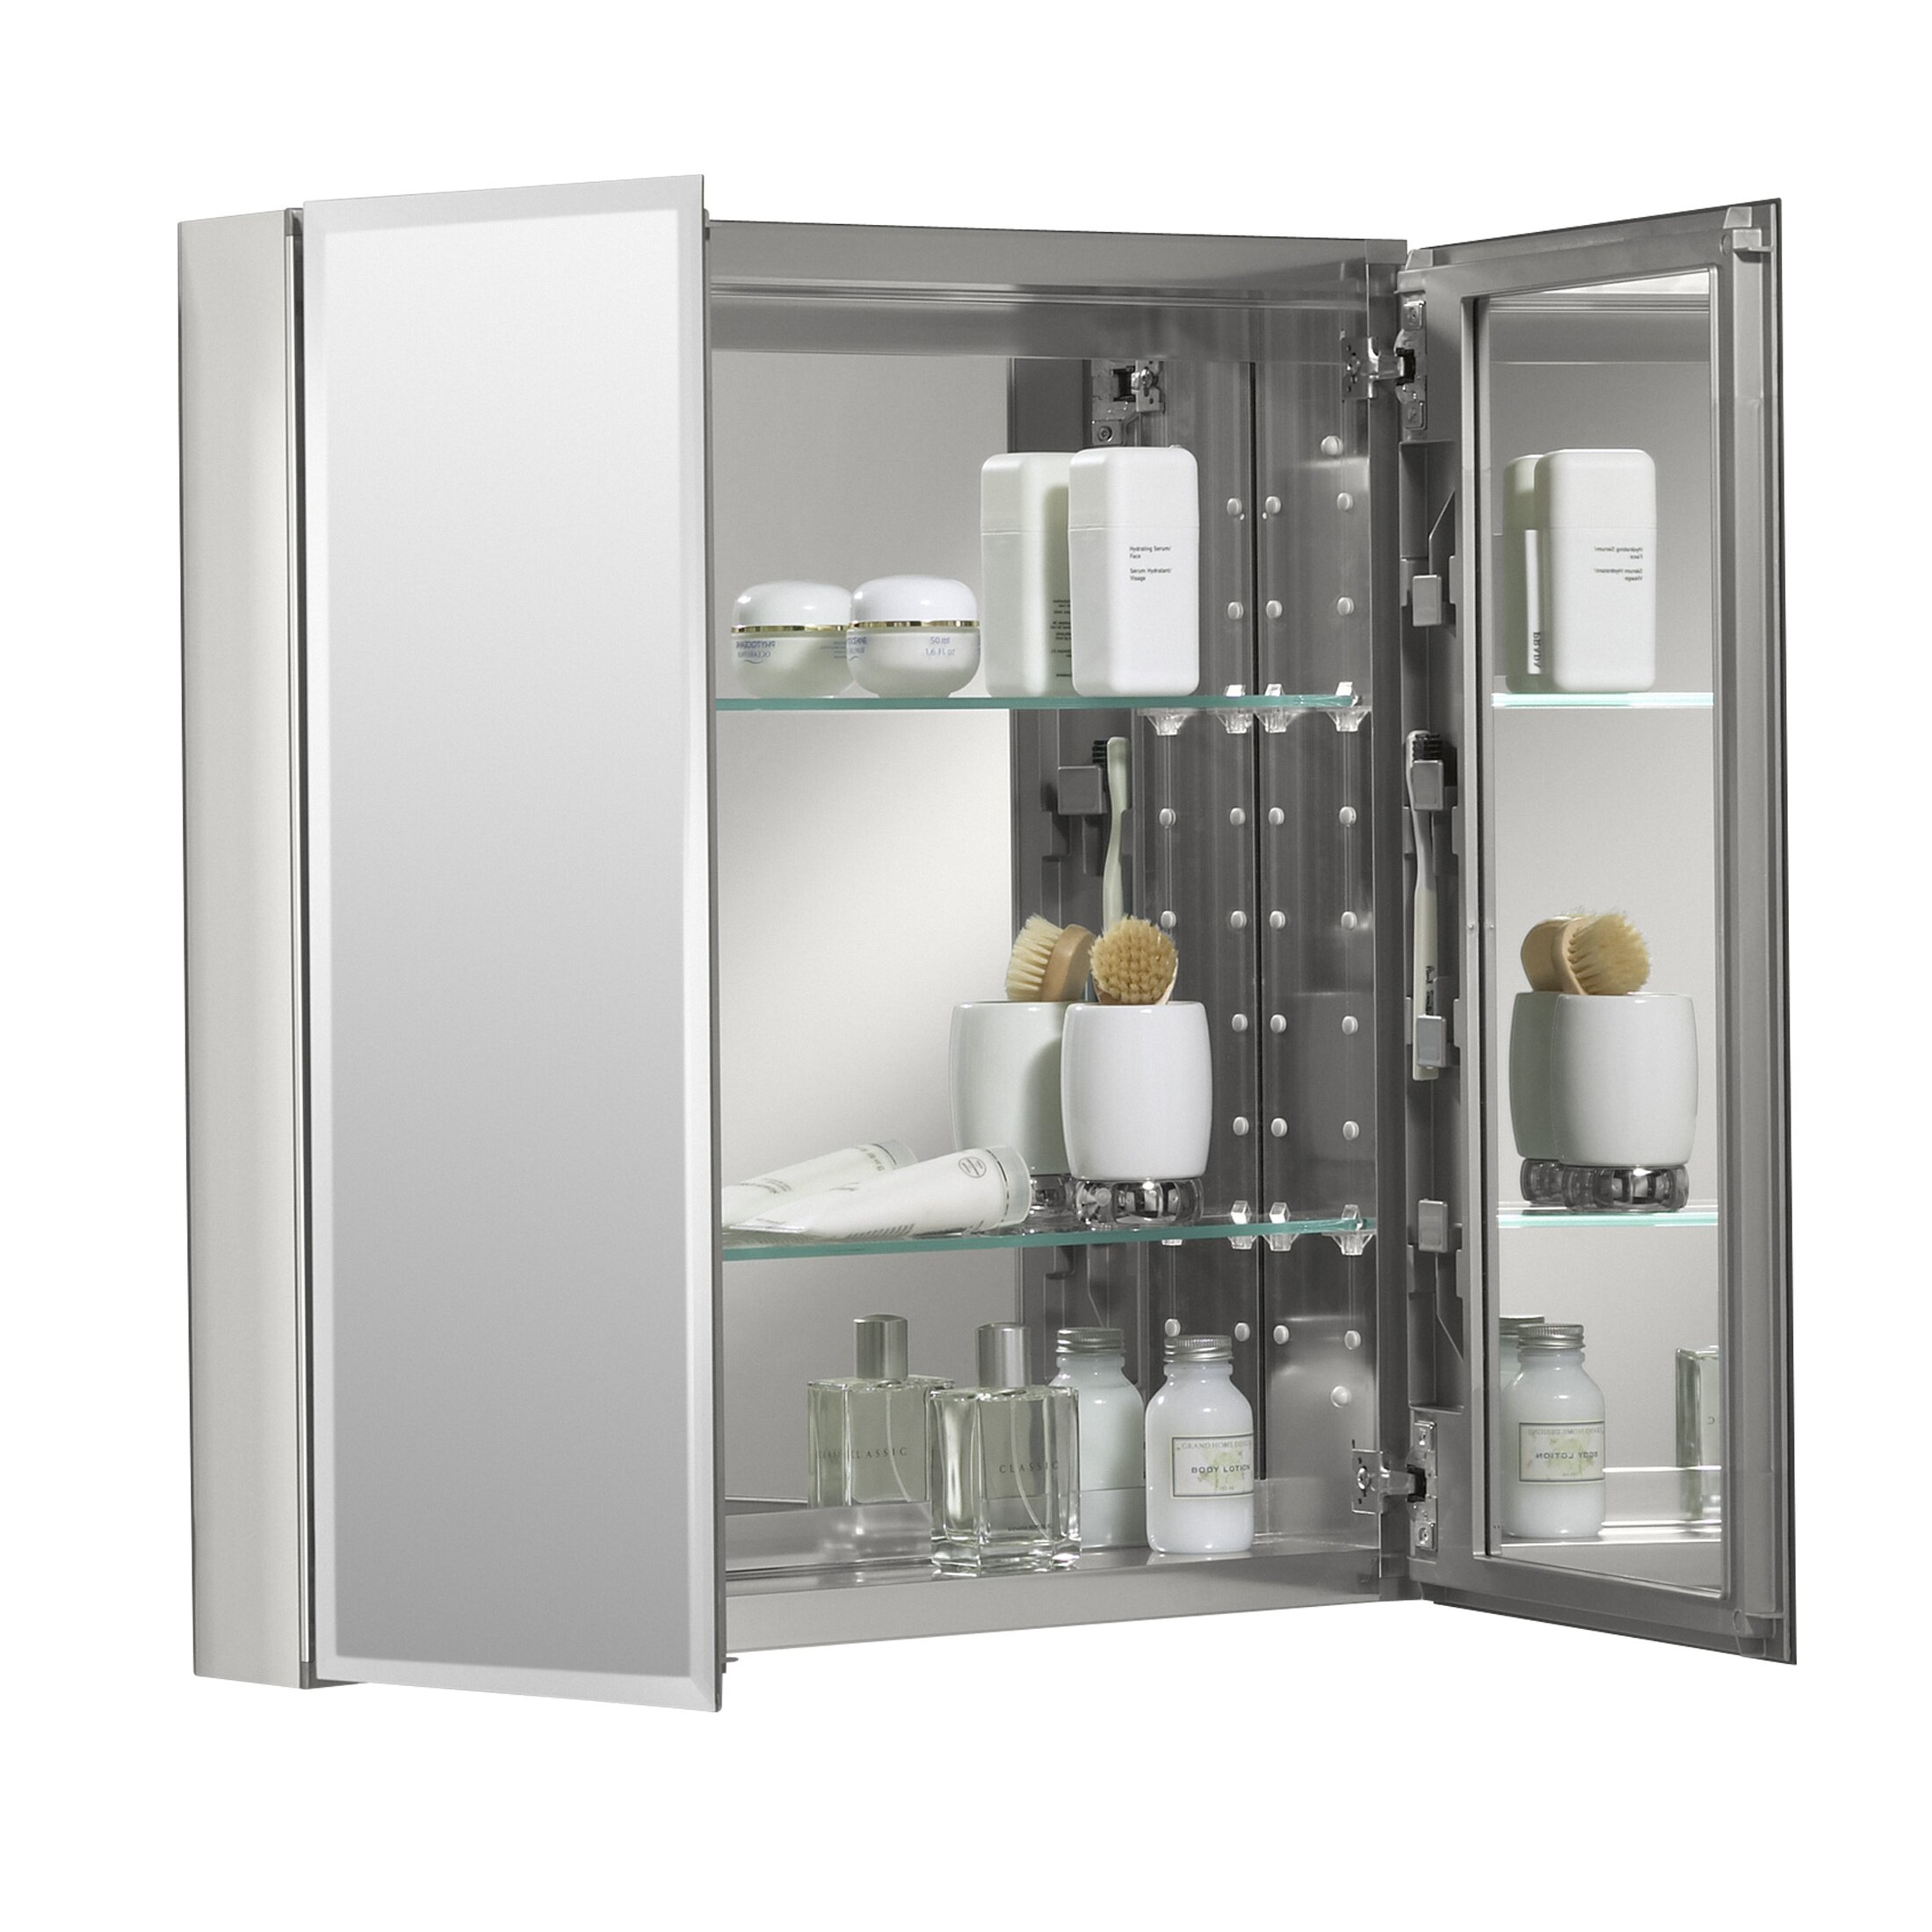 Kohler 25 X 26 Aluminum Mirrored Medicine Cabinet Reviews